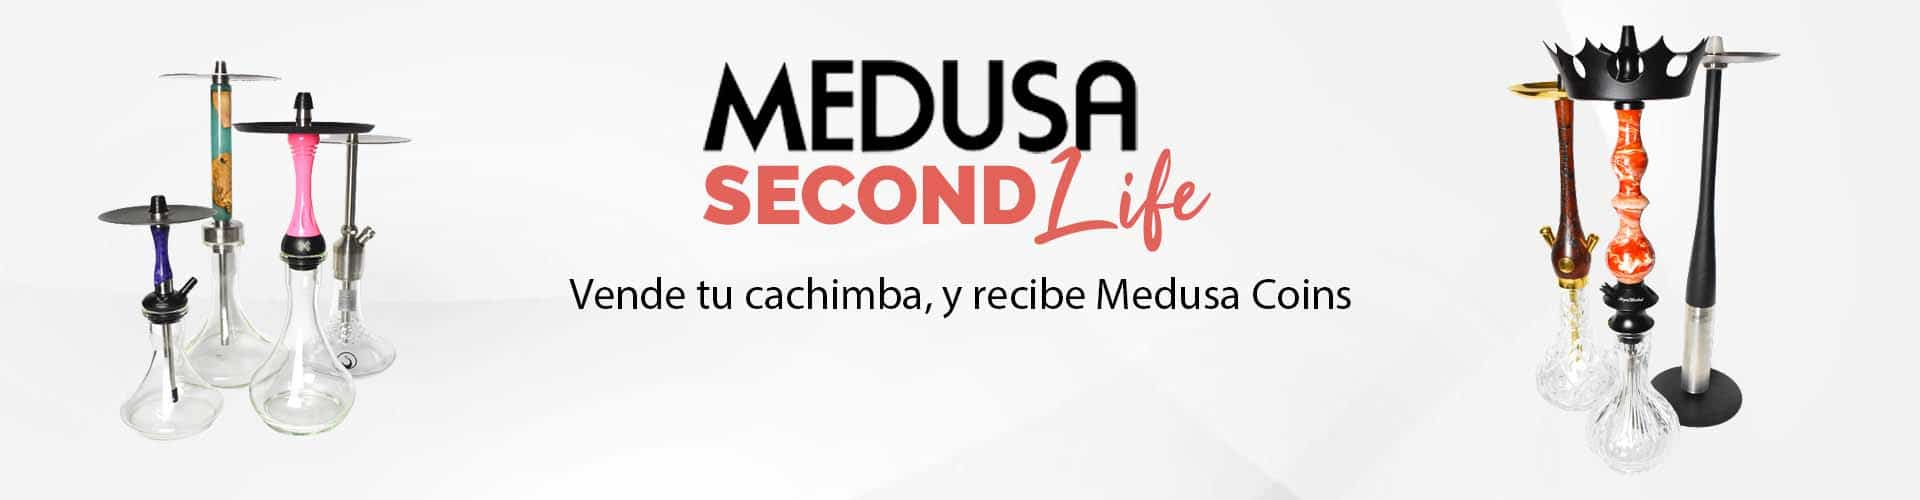 second life banner w